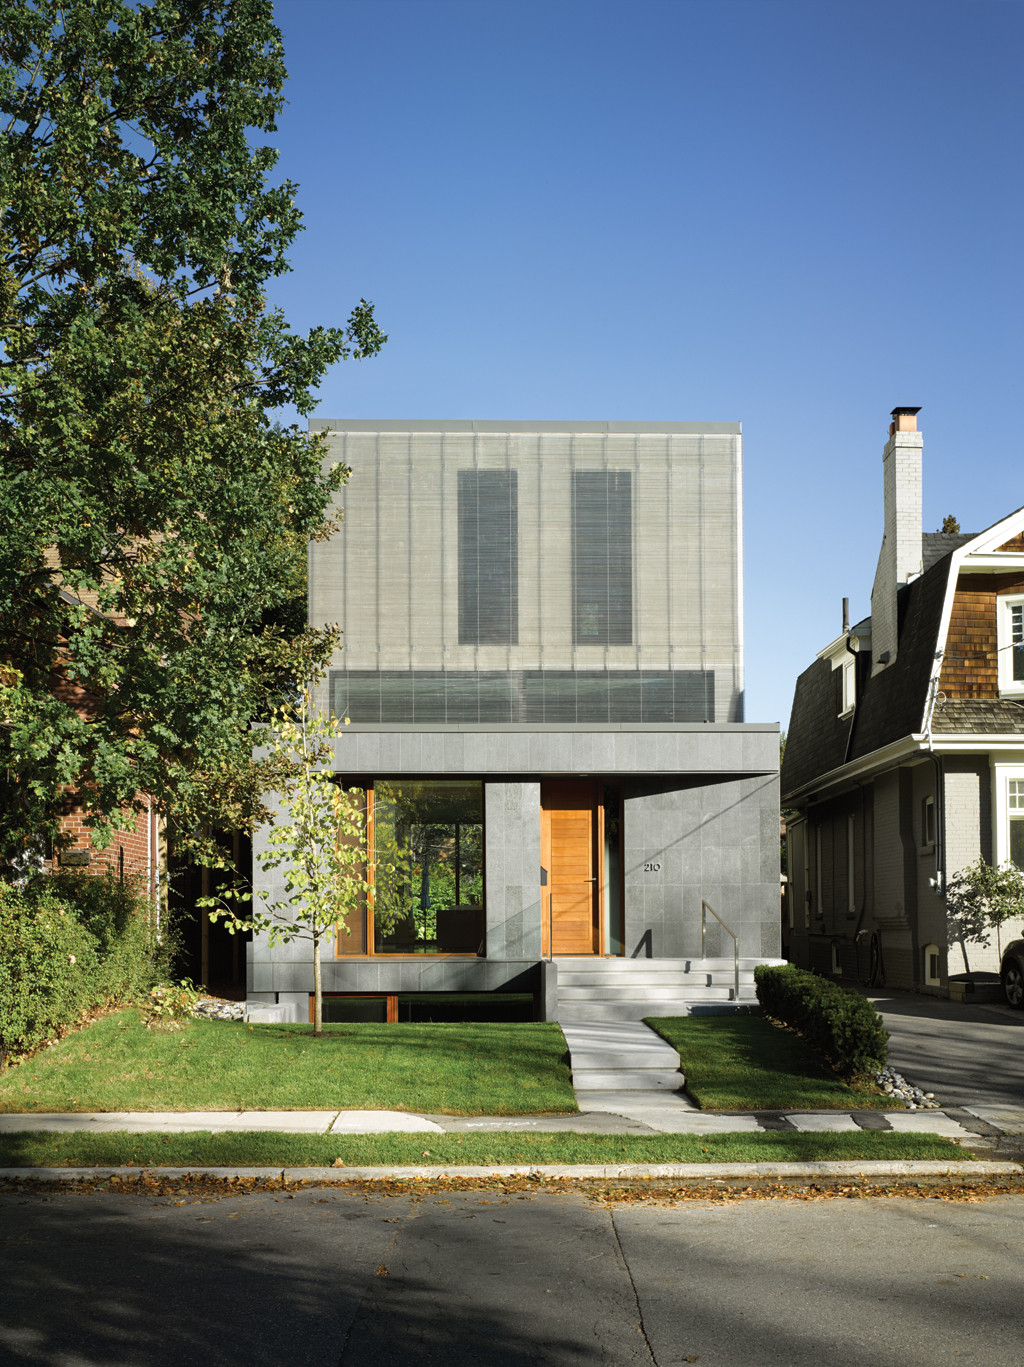 Counterpoint lofty, light-filled home by Paul Raff Studio Architects-03